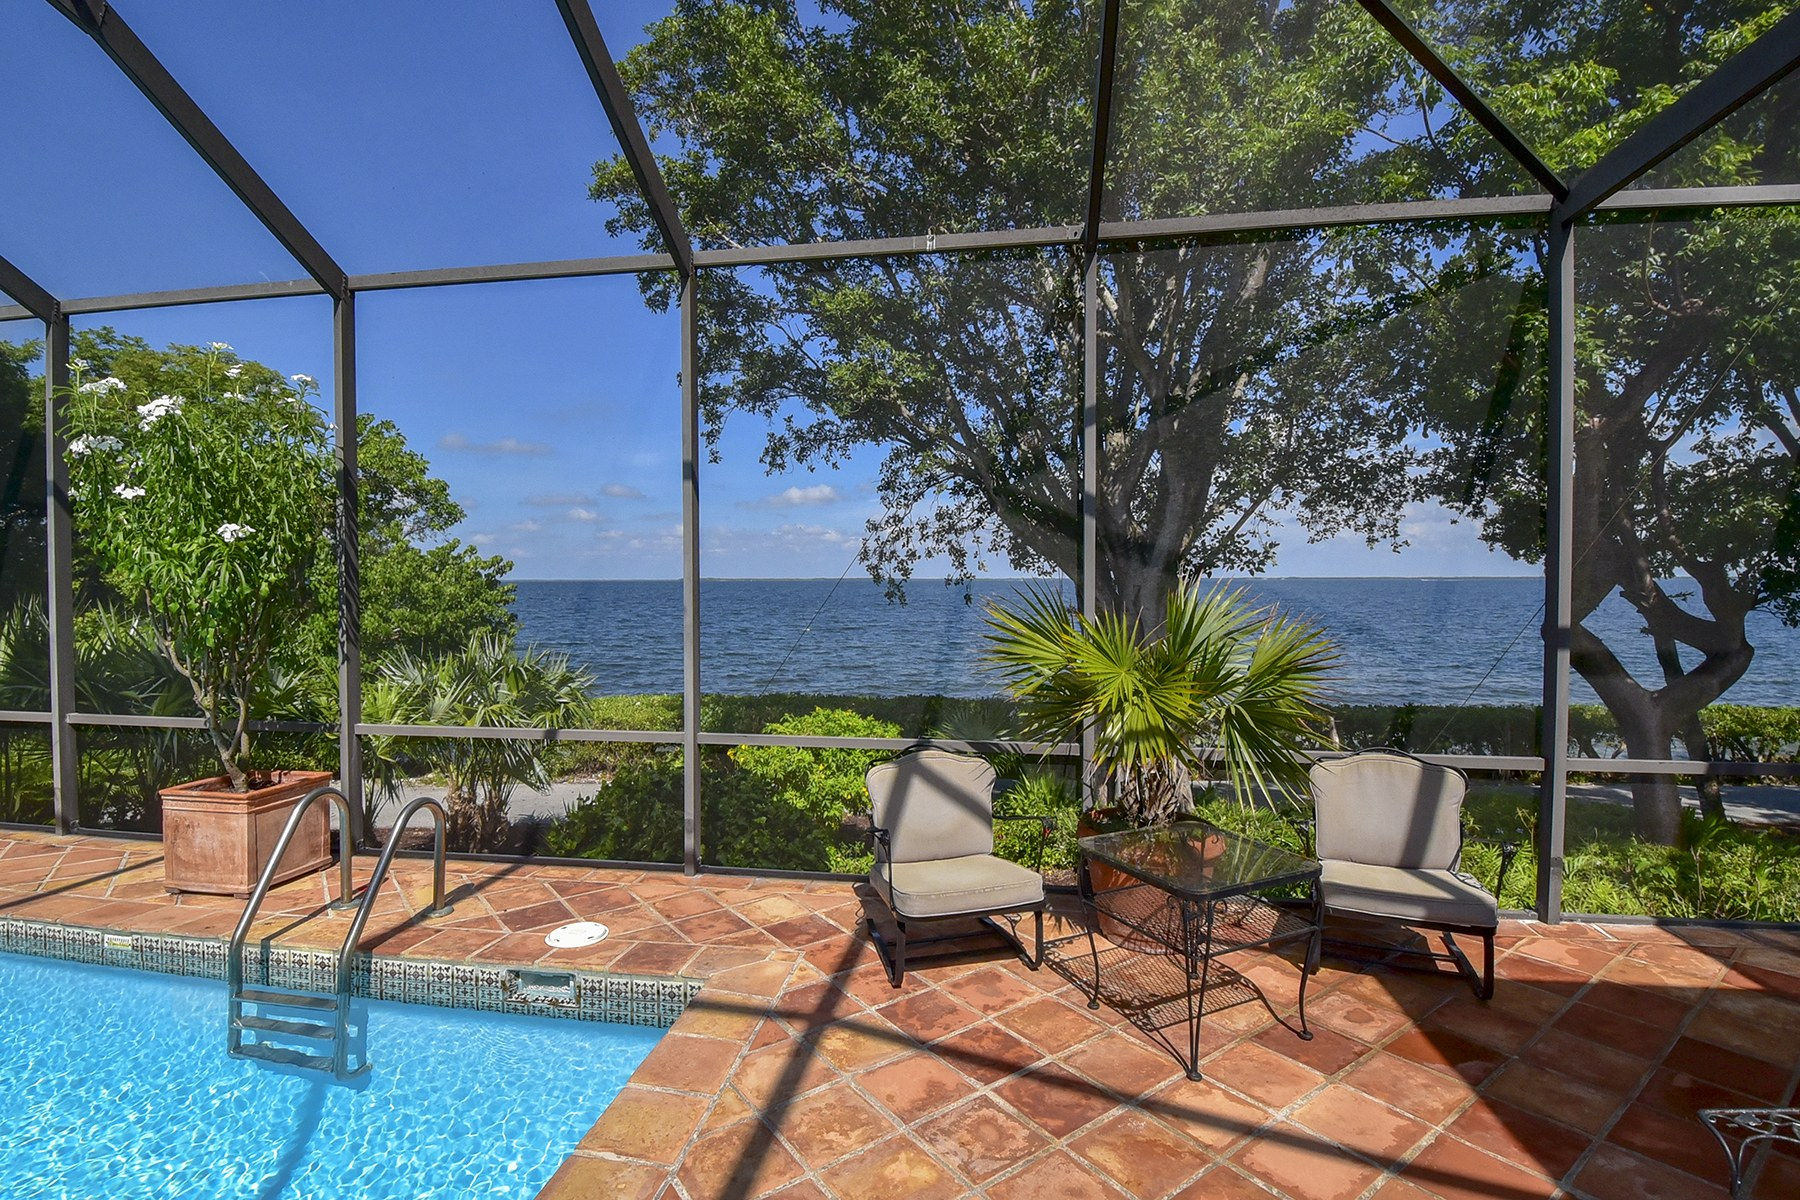 Additional photo for property listing at 10 Cannon Point, Key Largo, FL  Key Largo, Florida 33037 United States